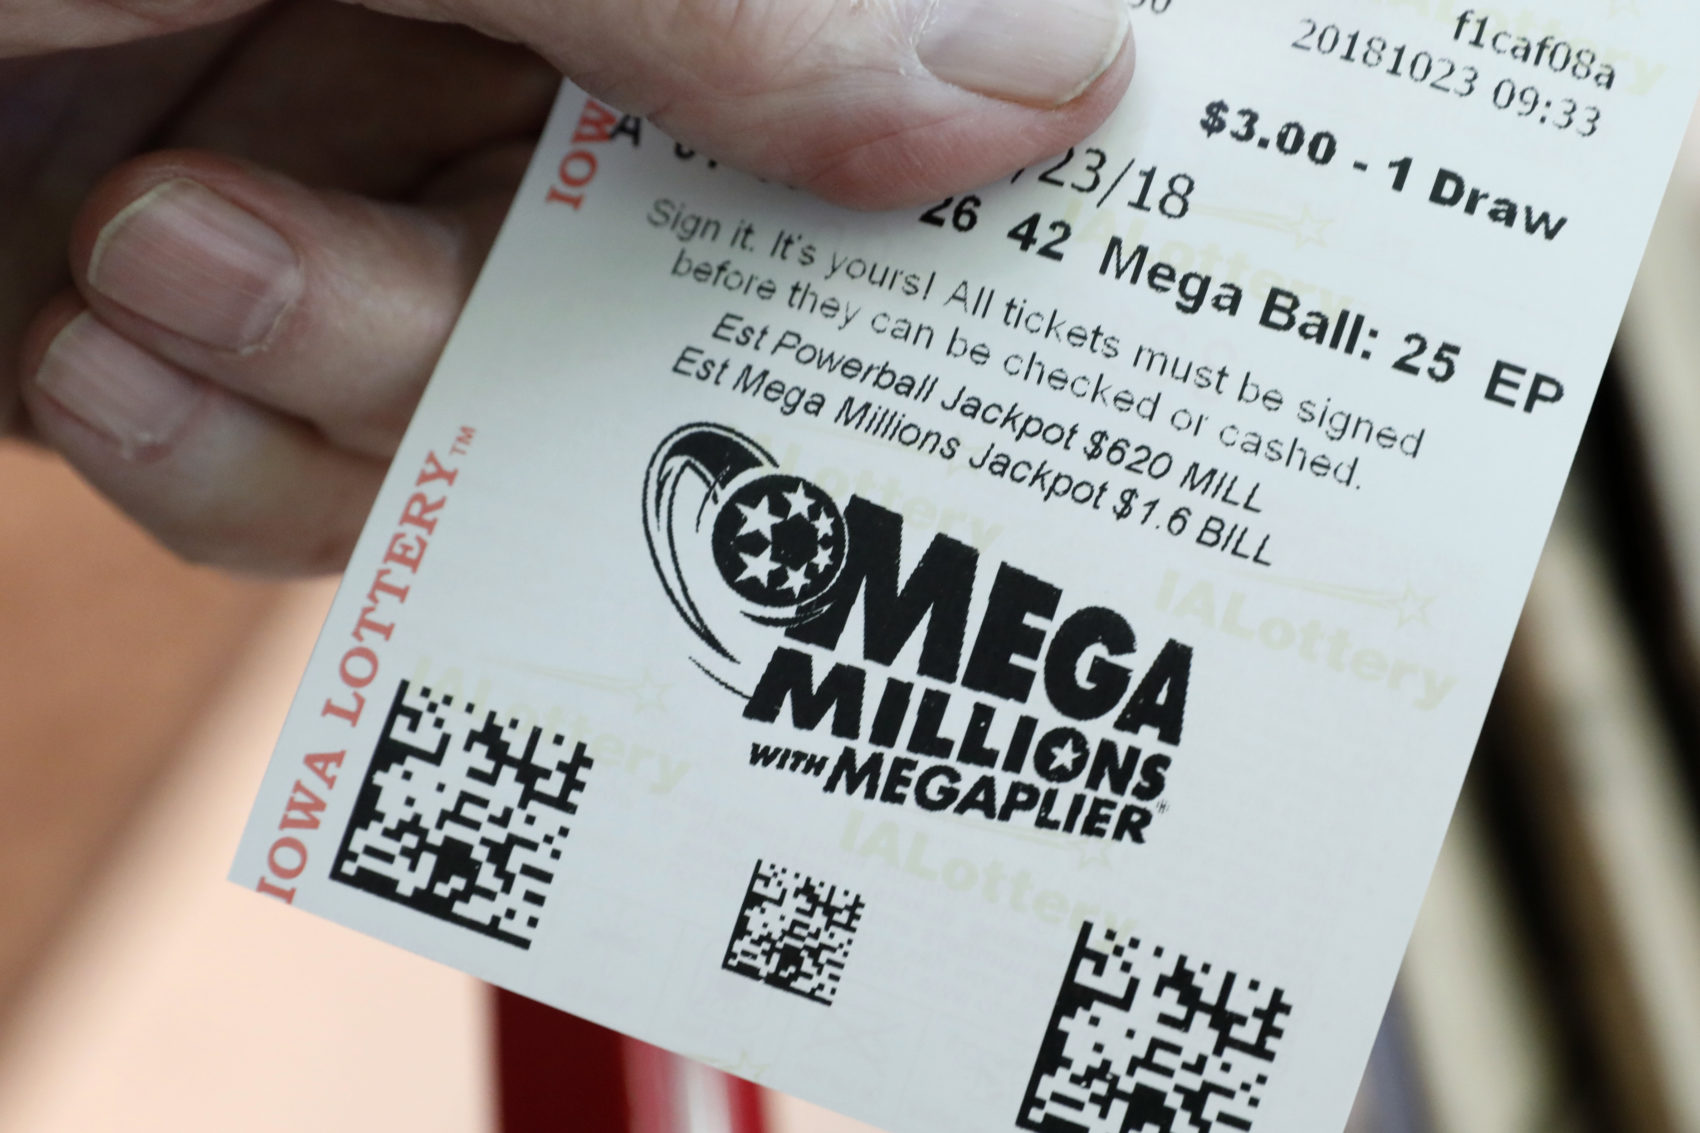 Mega Millions Tickets Being Sold At 11 000 Per Minute Clip In Massachusetts Wbur News